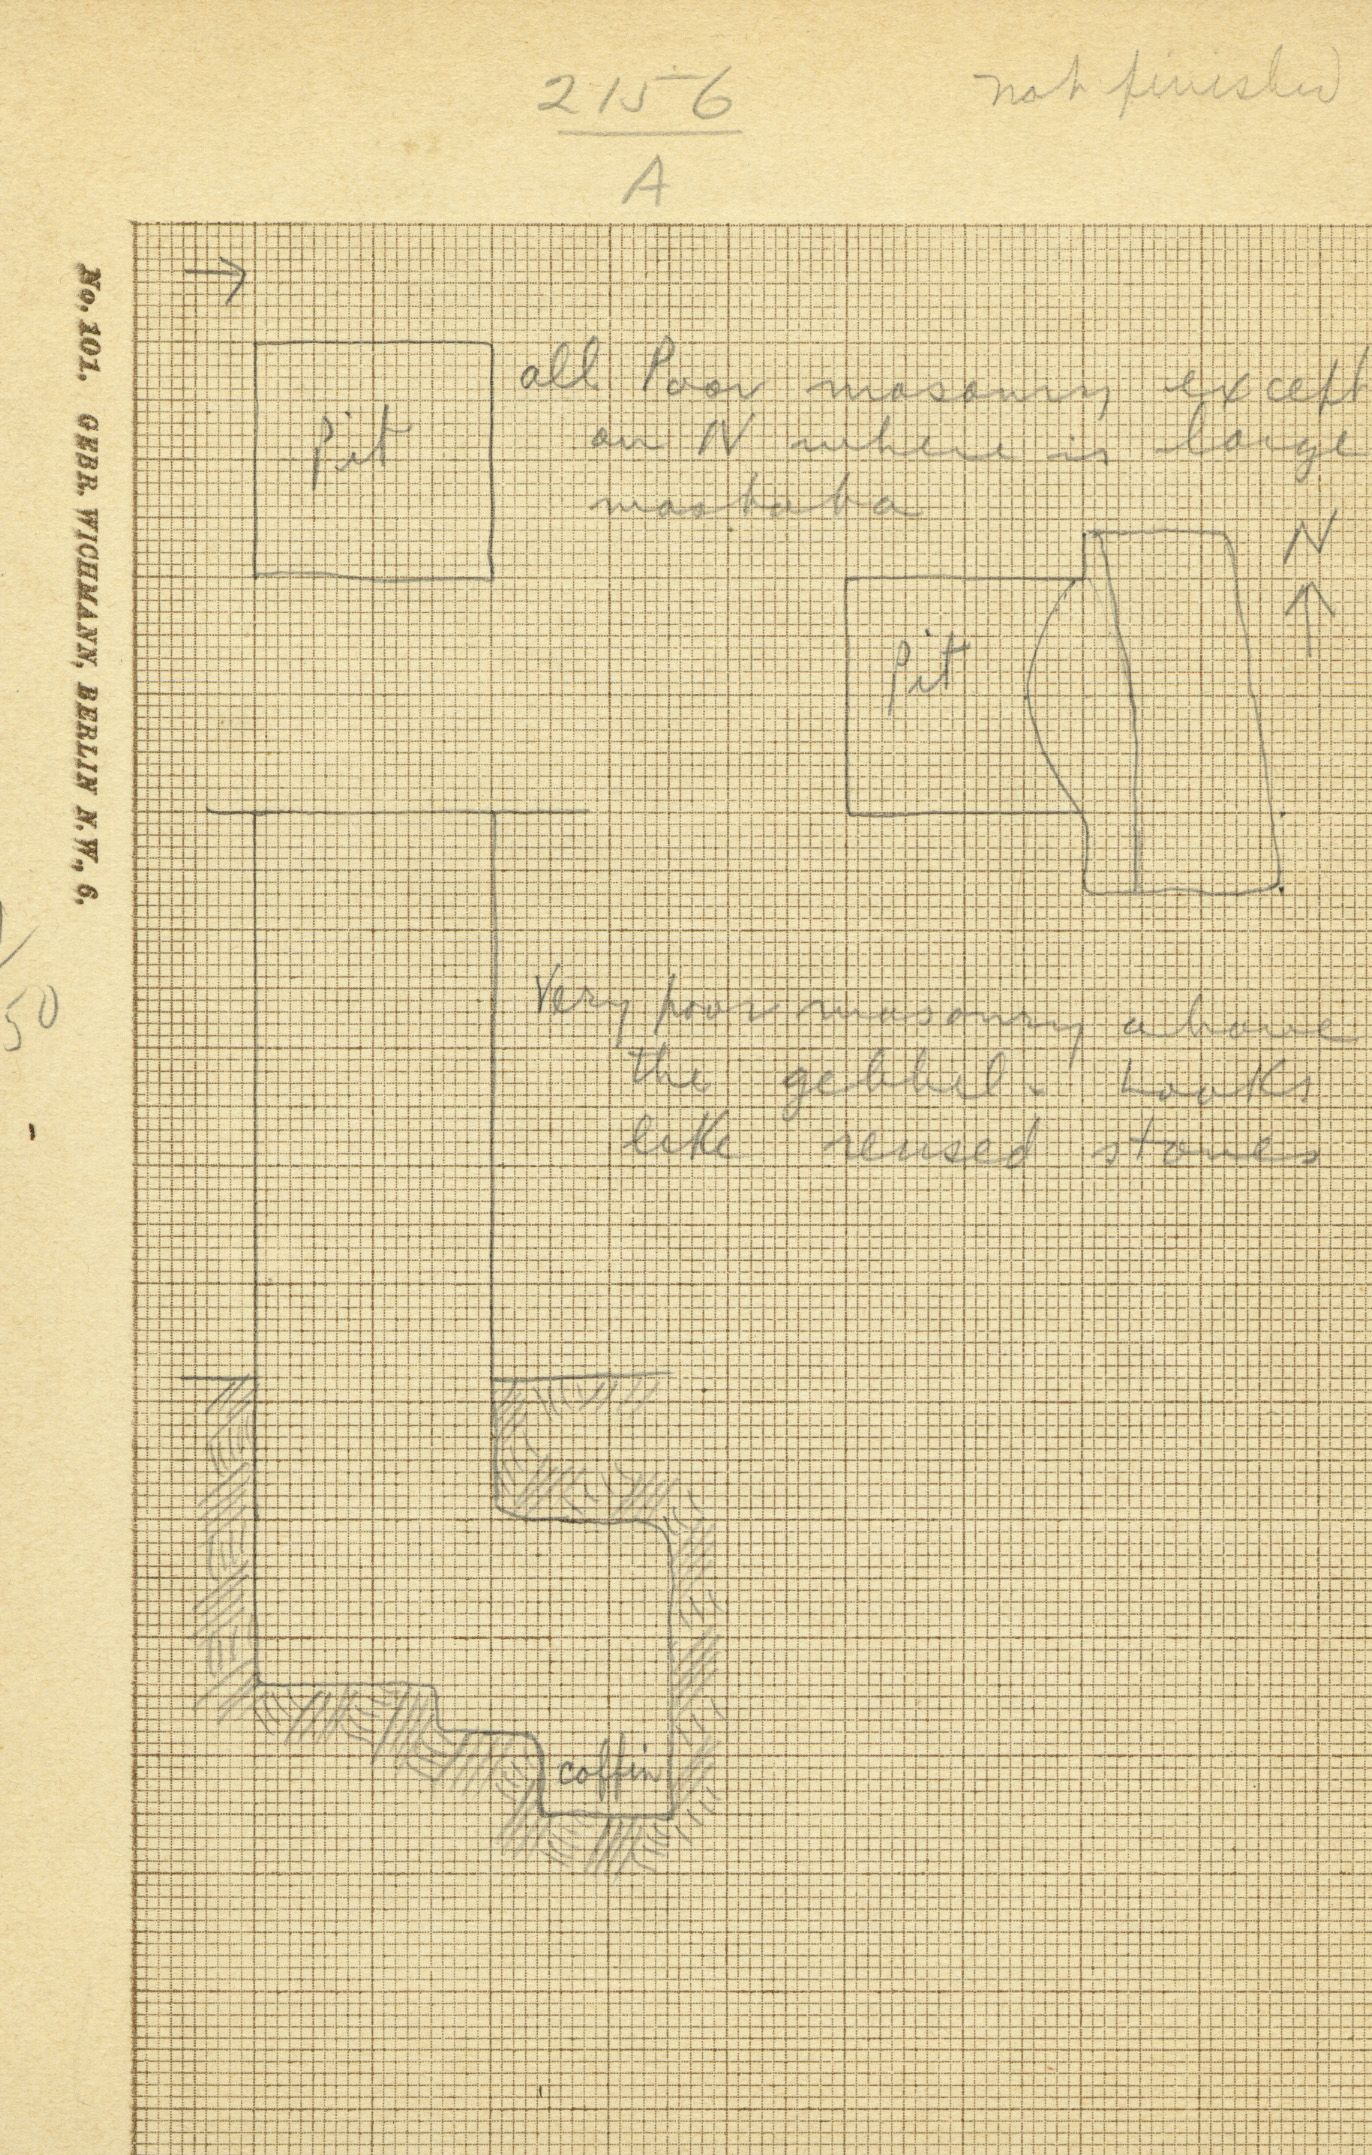 Maps and plans: G 2156', Shaft A